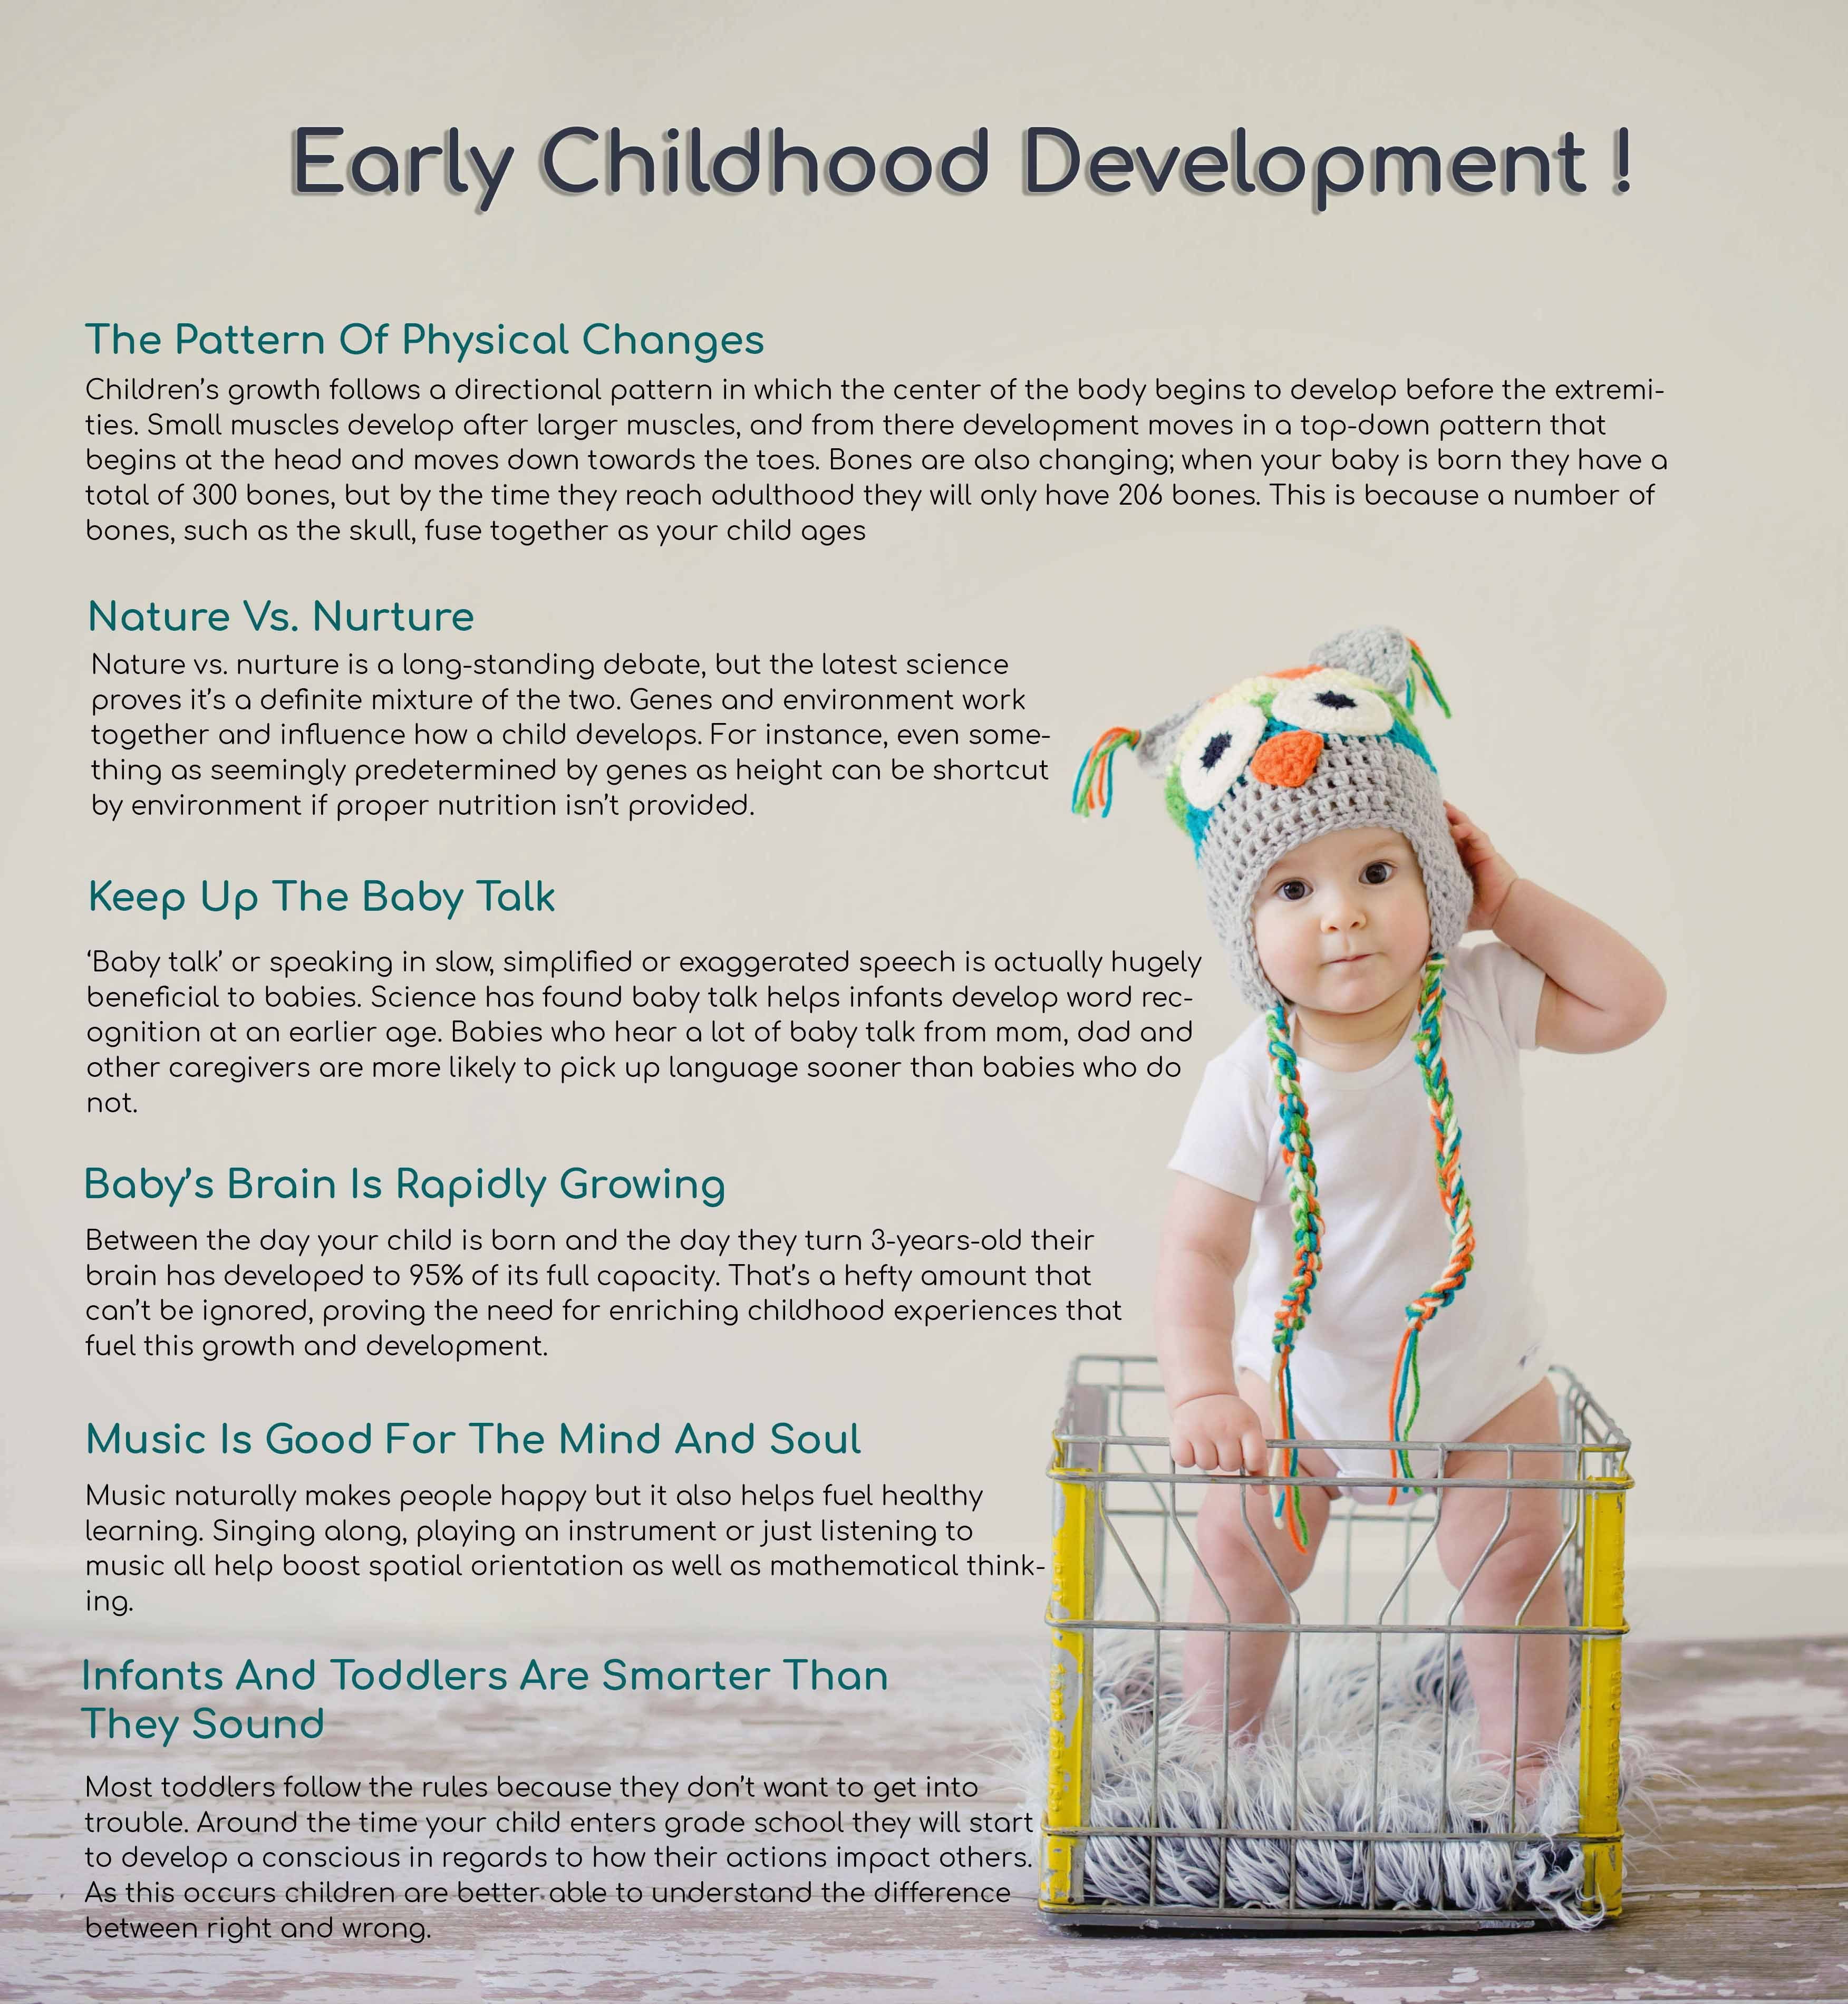 Enriching Early Childhood Experiences >> Early Childhood Development Facts By Headsmart Best